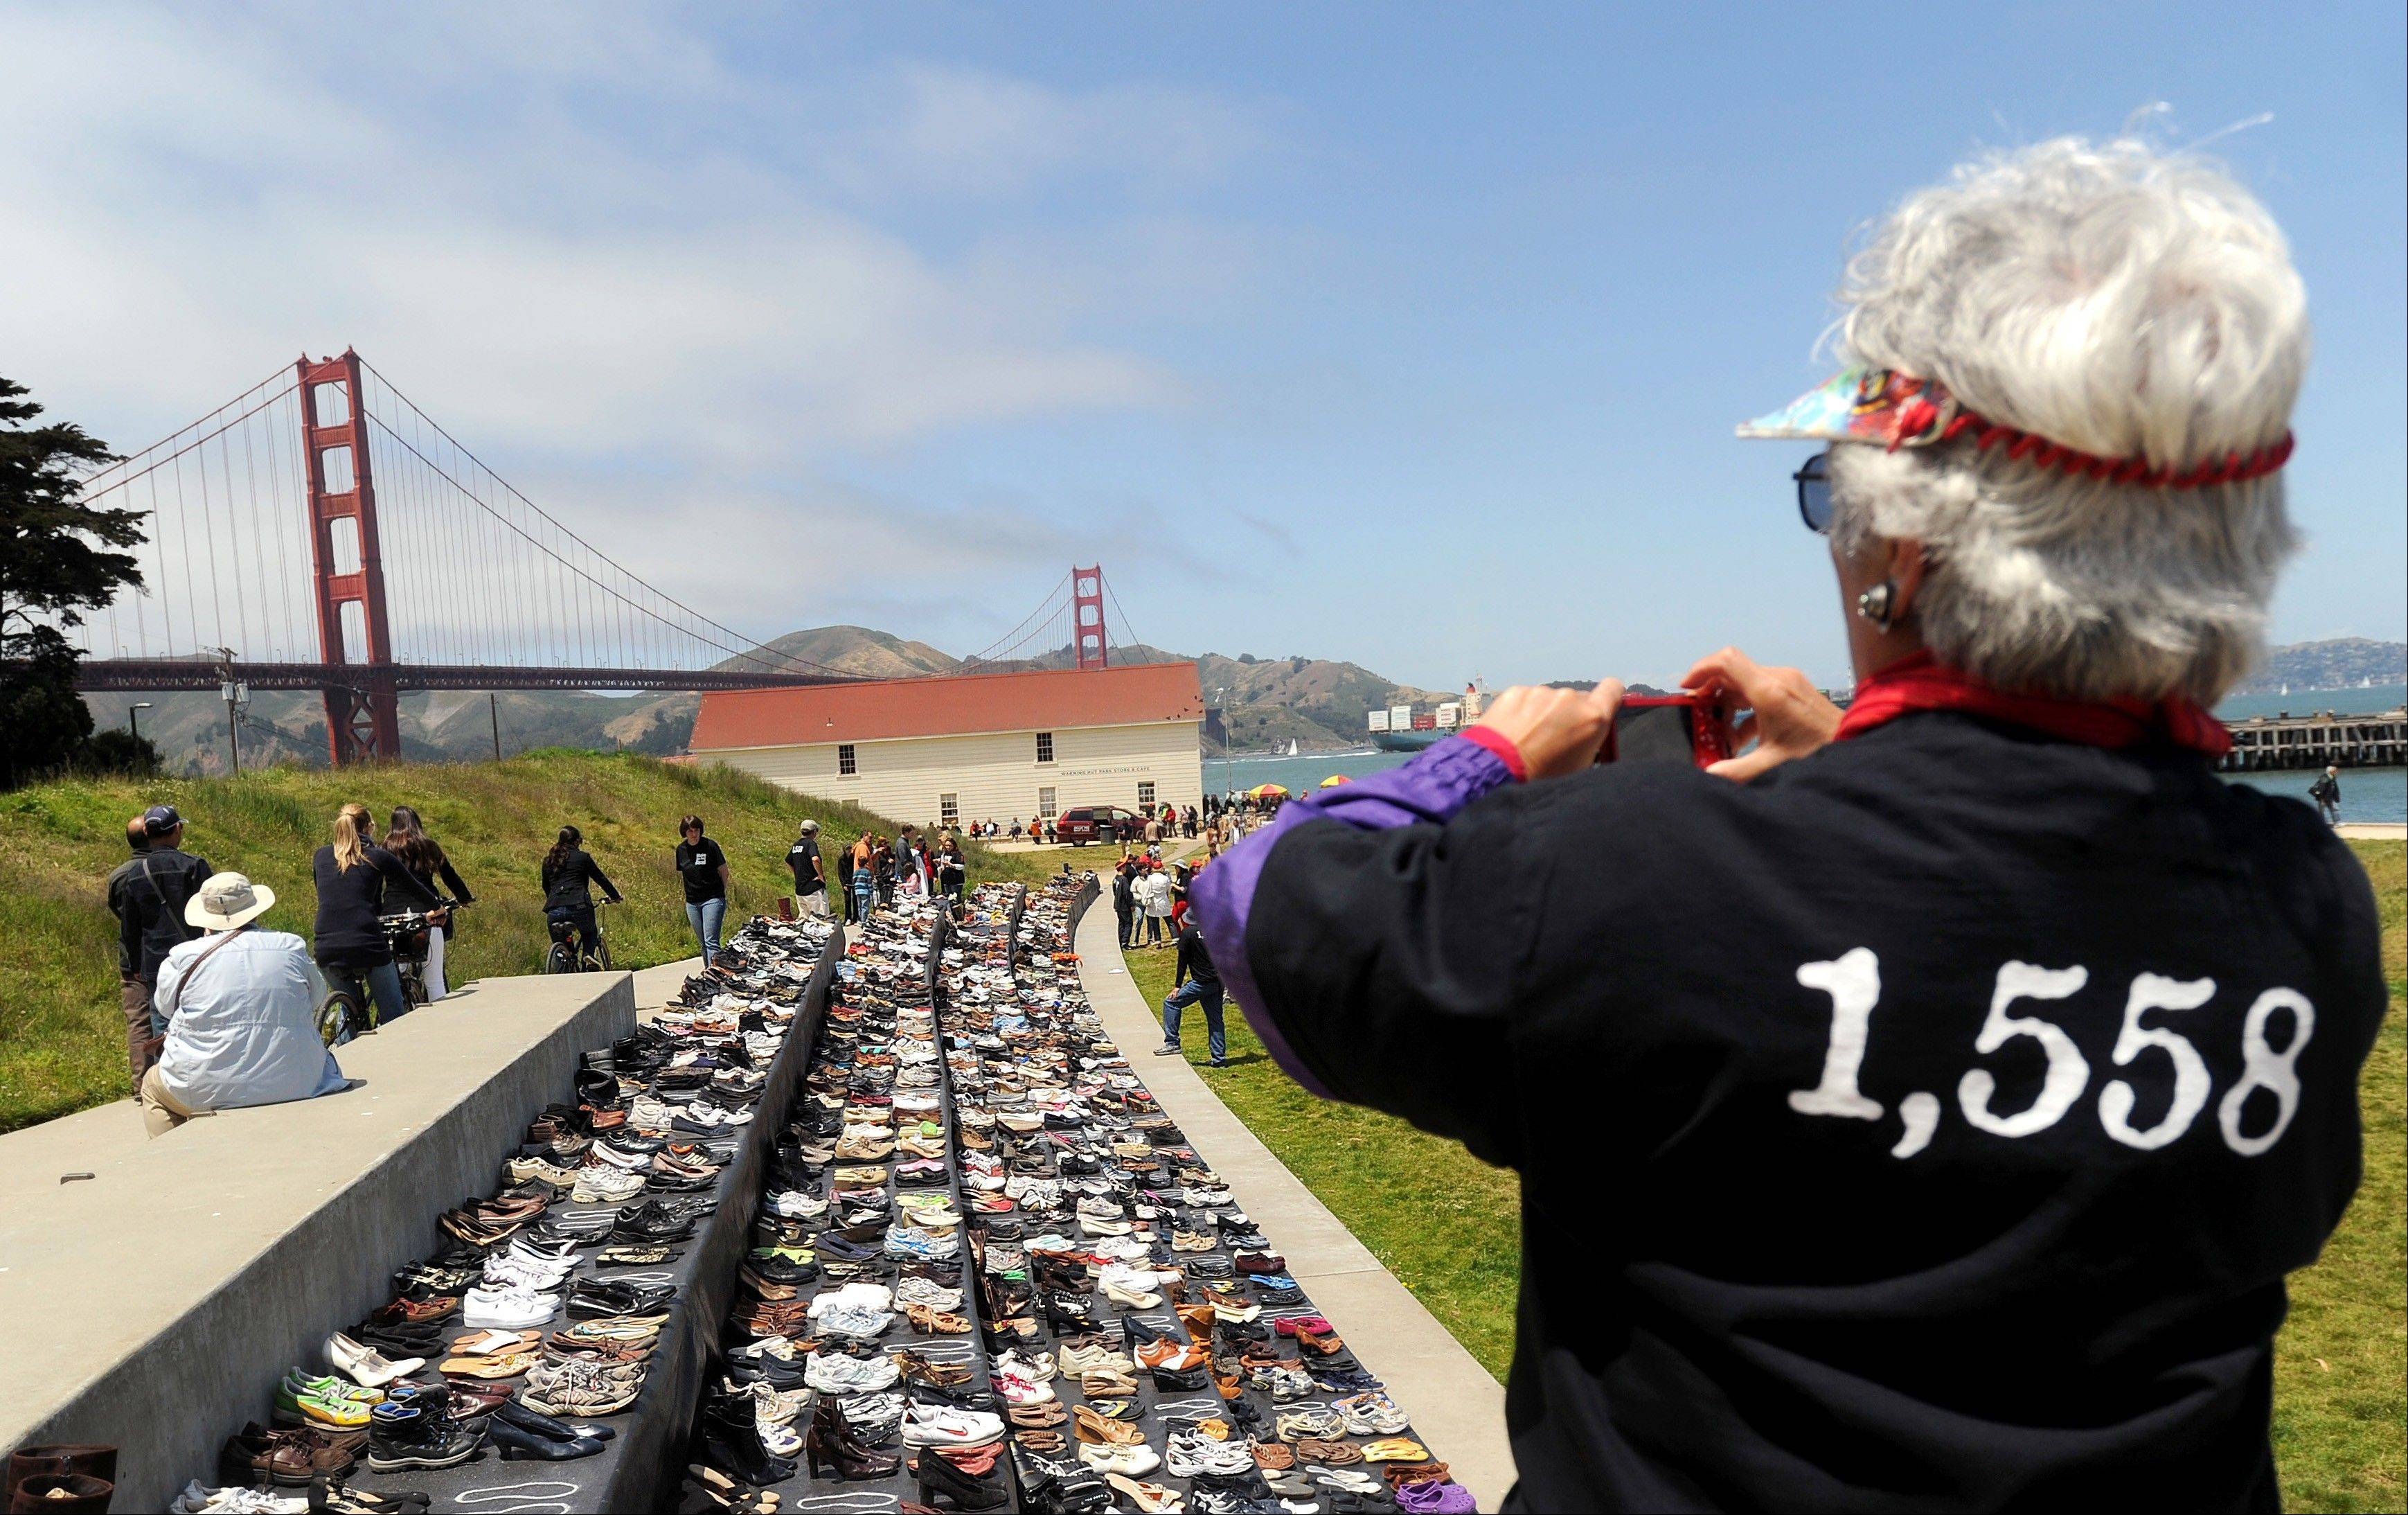 Roberta McLauglin photographs an exhibit of shoes Sunday in remembrance of people who have jumped from the Golden Gate Bridge. The Bridge Rail Foundation, which advocates for a safety net along the span to prevent suicides, estimates about 1,558 people have died after jumping since the bridge opened.